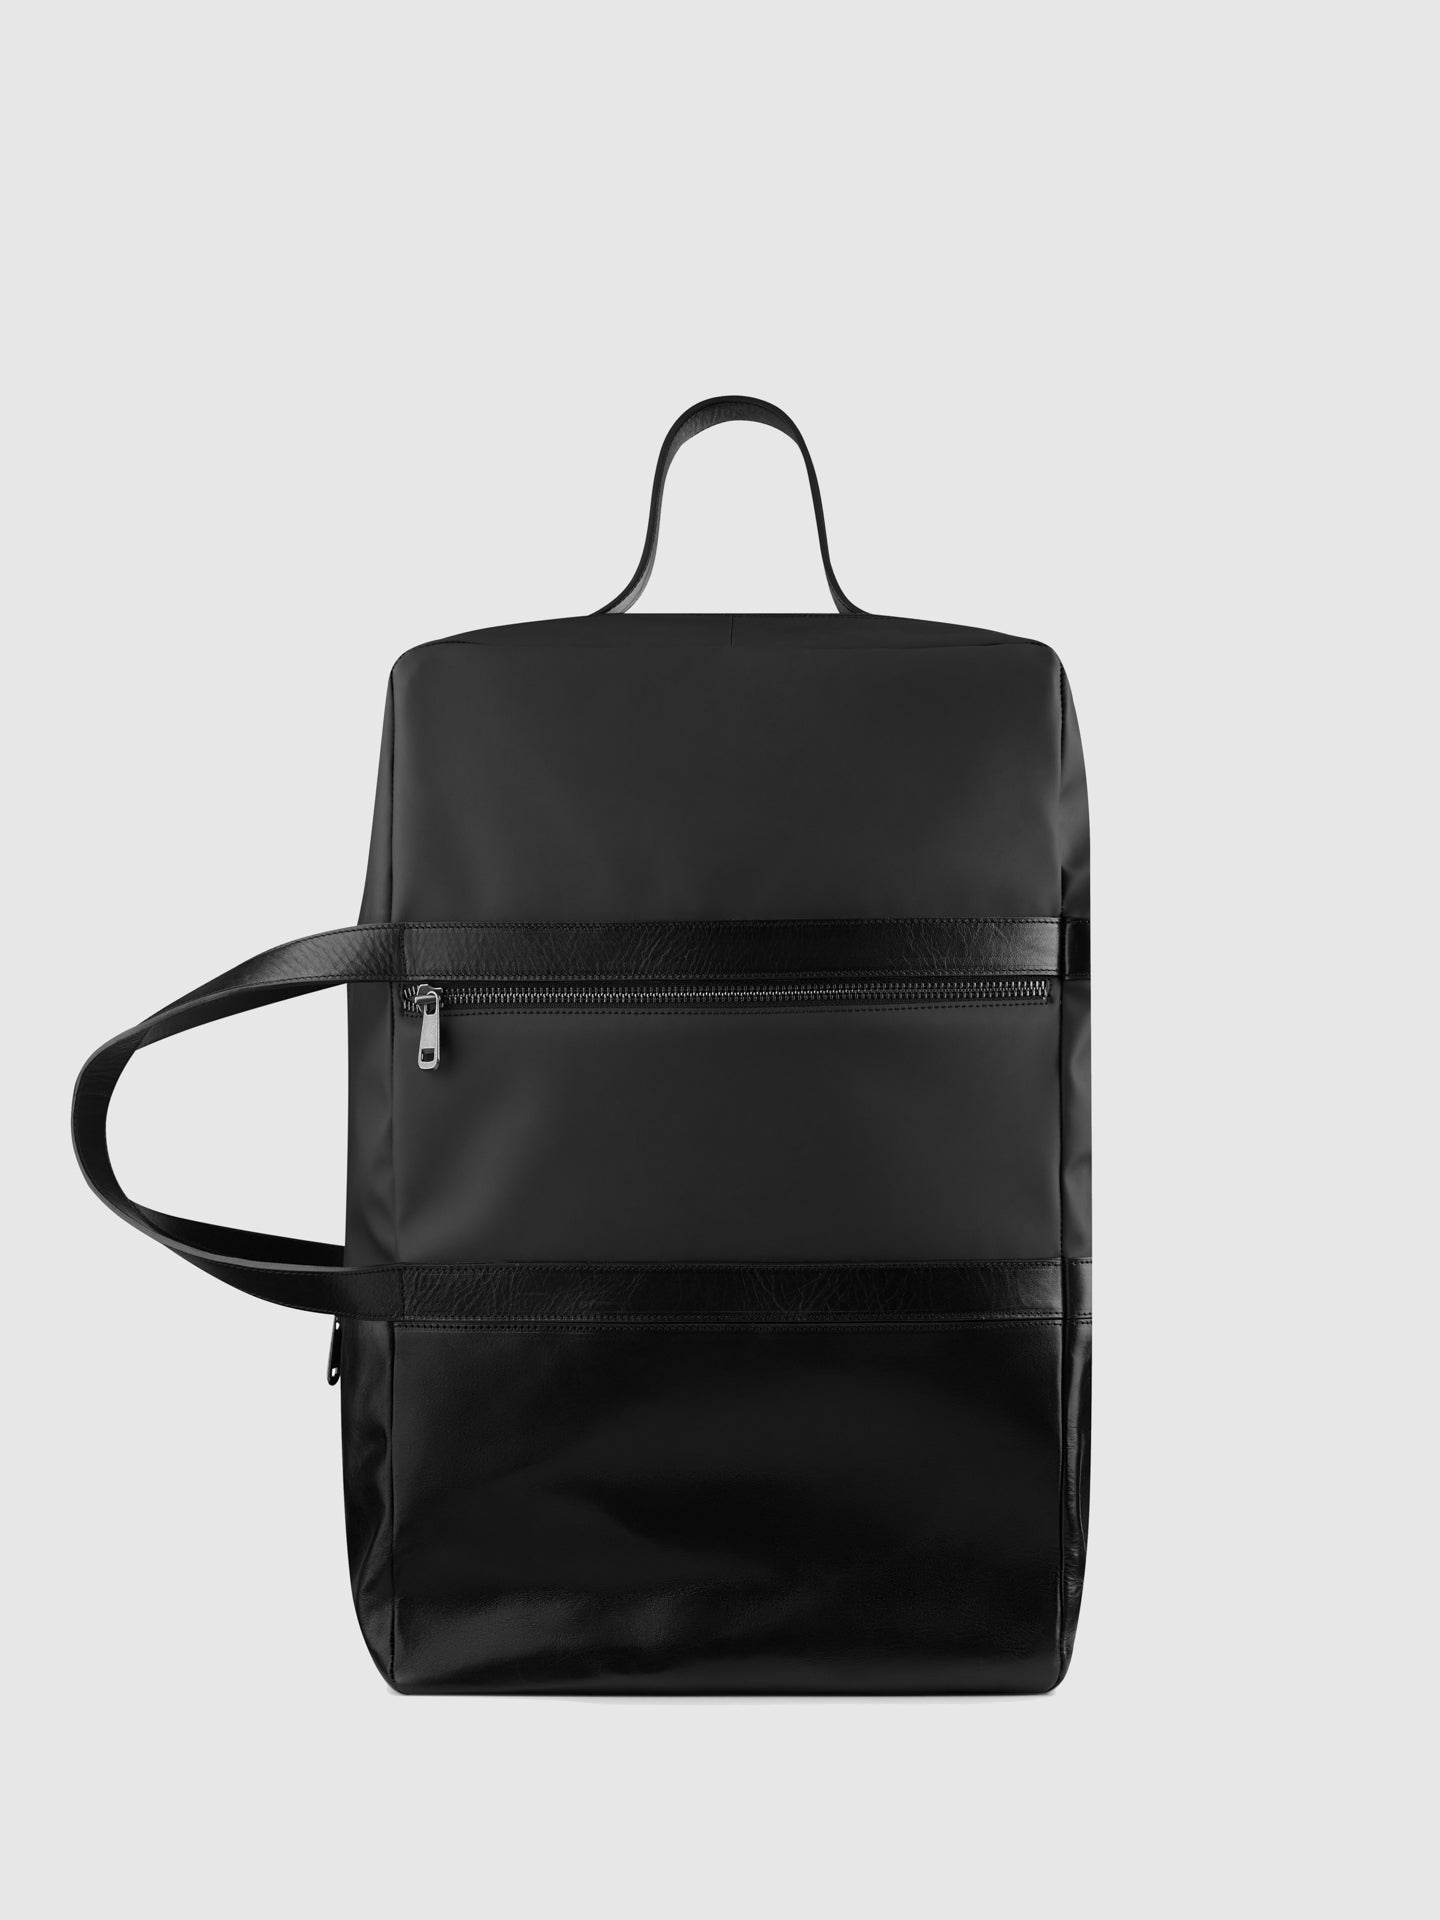 Maria Maleta Black Leather Weekend Bag